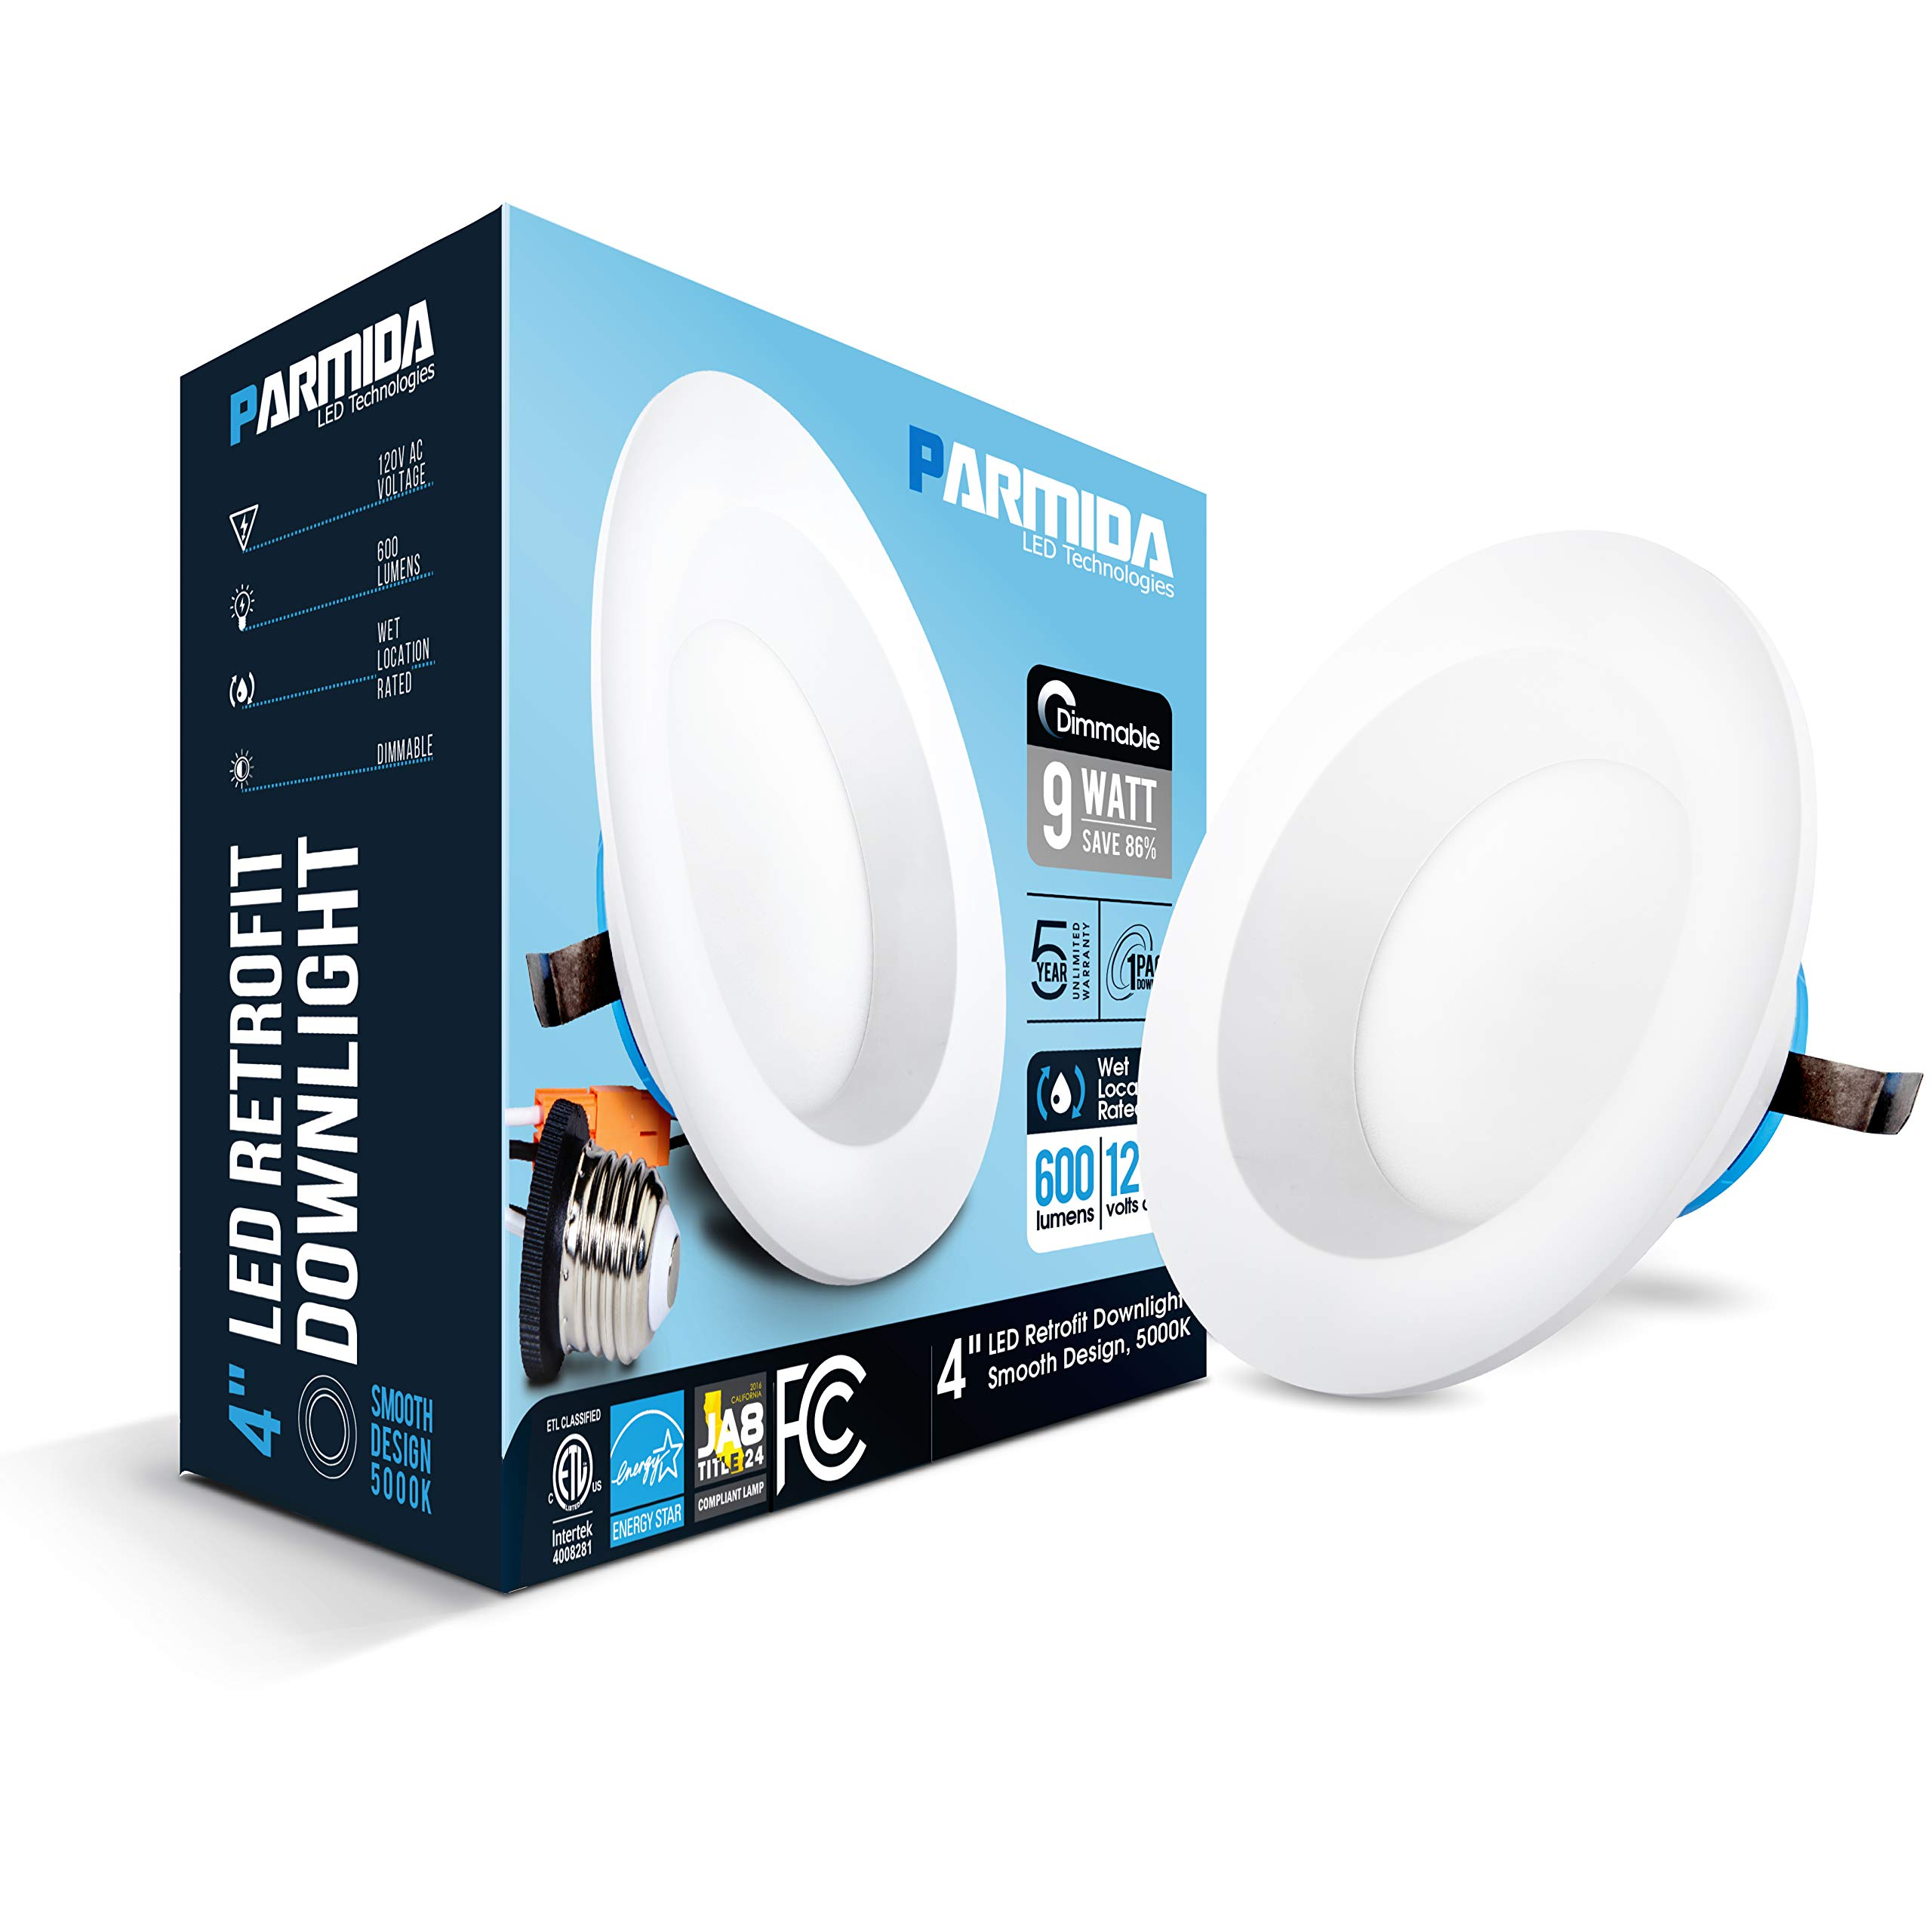 Parmida (4 Pack) 4 inch Dimmable LED Retrofit Recessed Downlight, 9W (65W Replacement), Smooth Design, 600lm, 5000K (Day Light), Energy Star & ETL, LED Ceiling Can Light, LED Trim